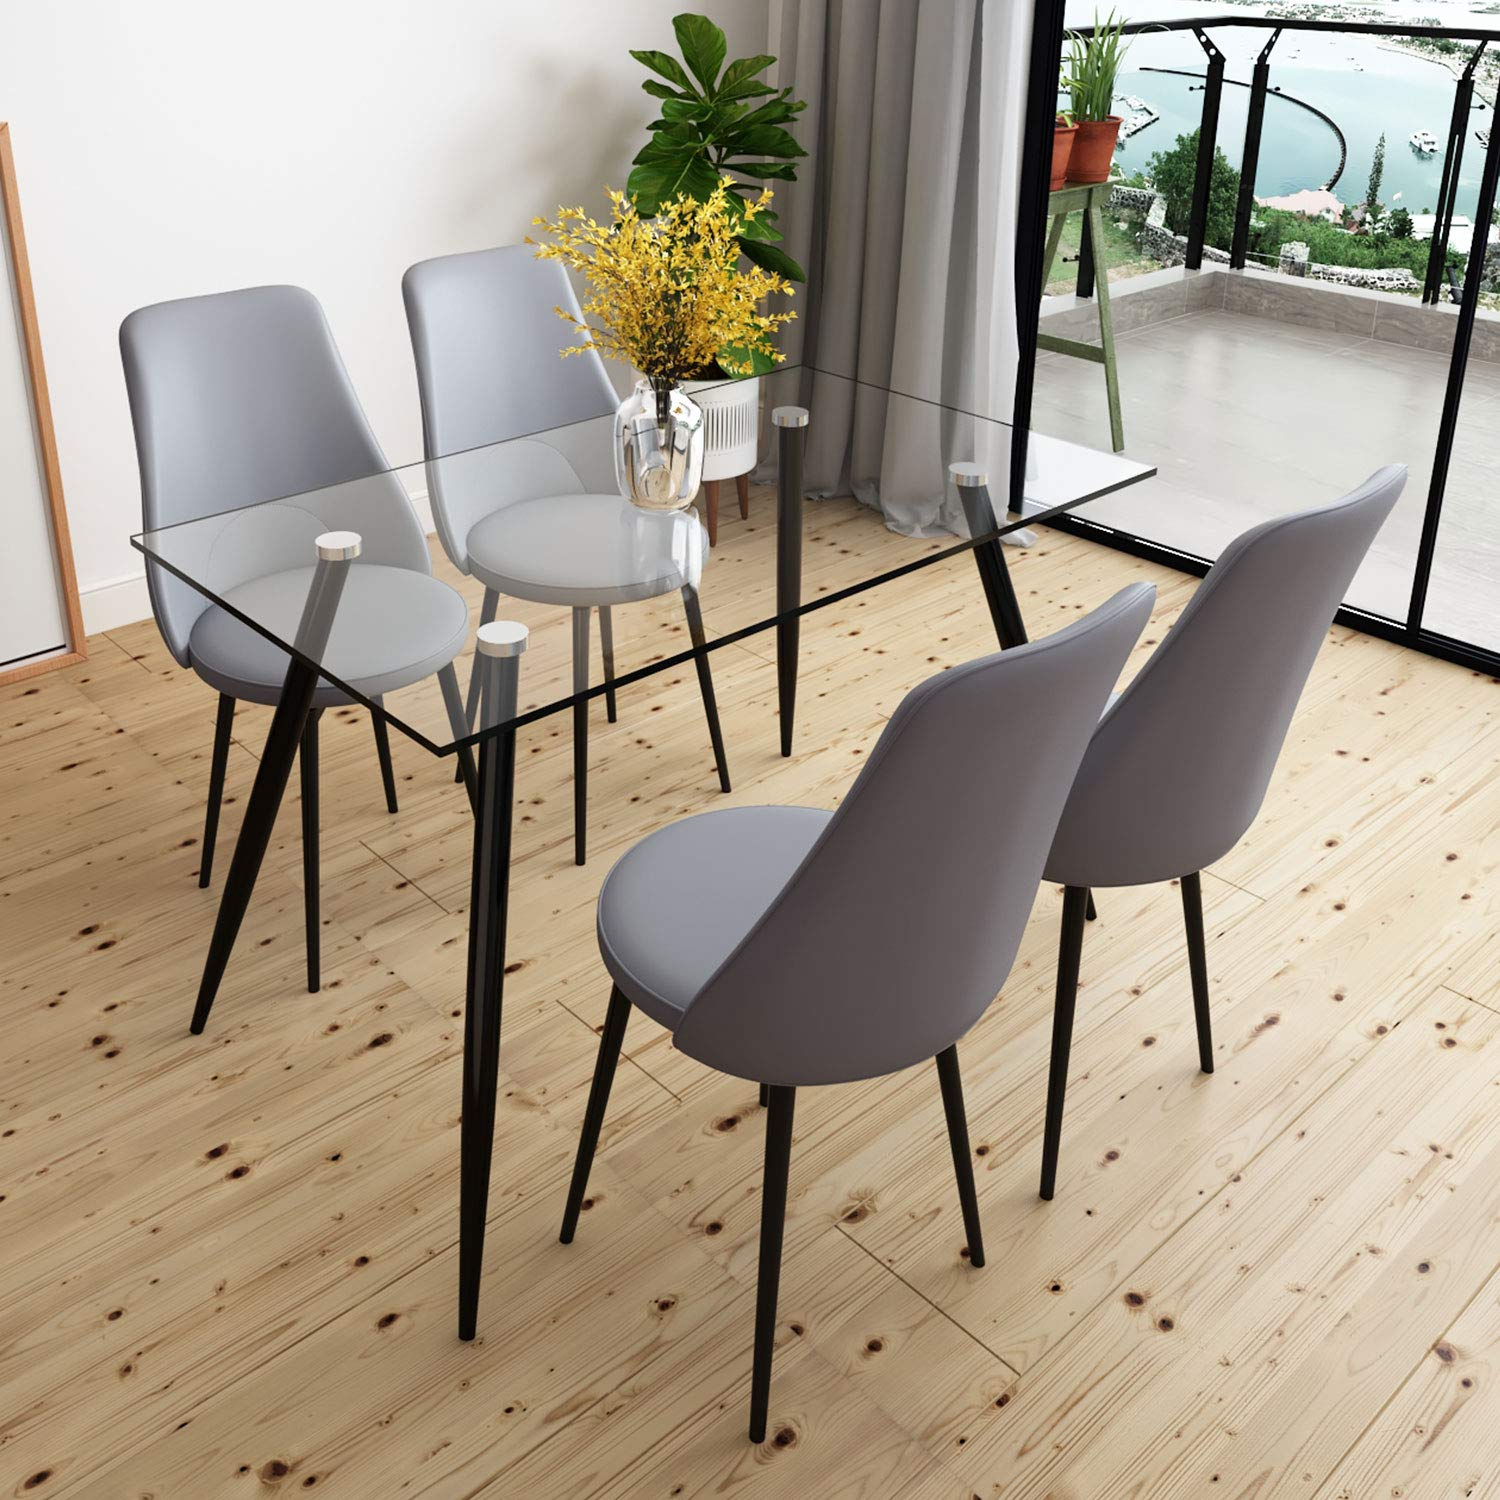 5 PCS Dining room Set Glass Dining Table 4 Swivel Chair with Metal Wood Leg for Dining Room Kitchen Furniture Grey